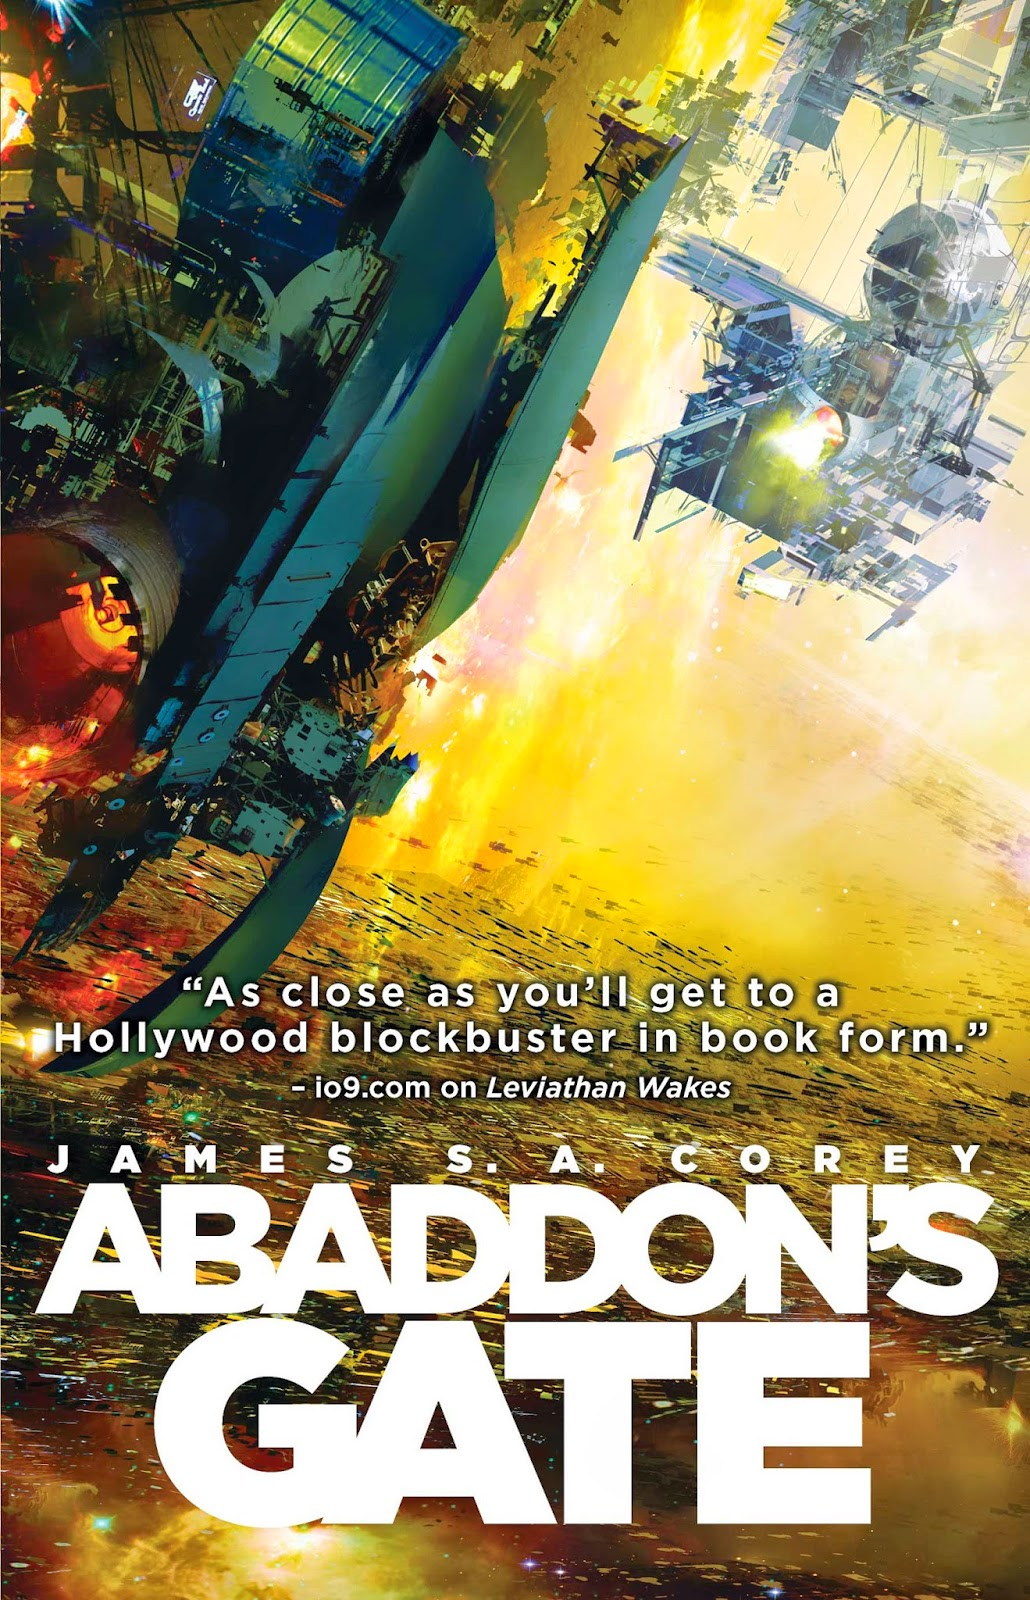 http://discover.halifaxpubliclibraries.ca/?q=title:abaddon%27s%20gate